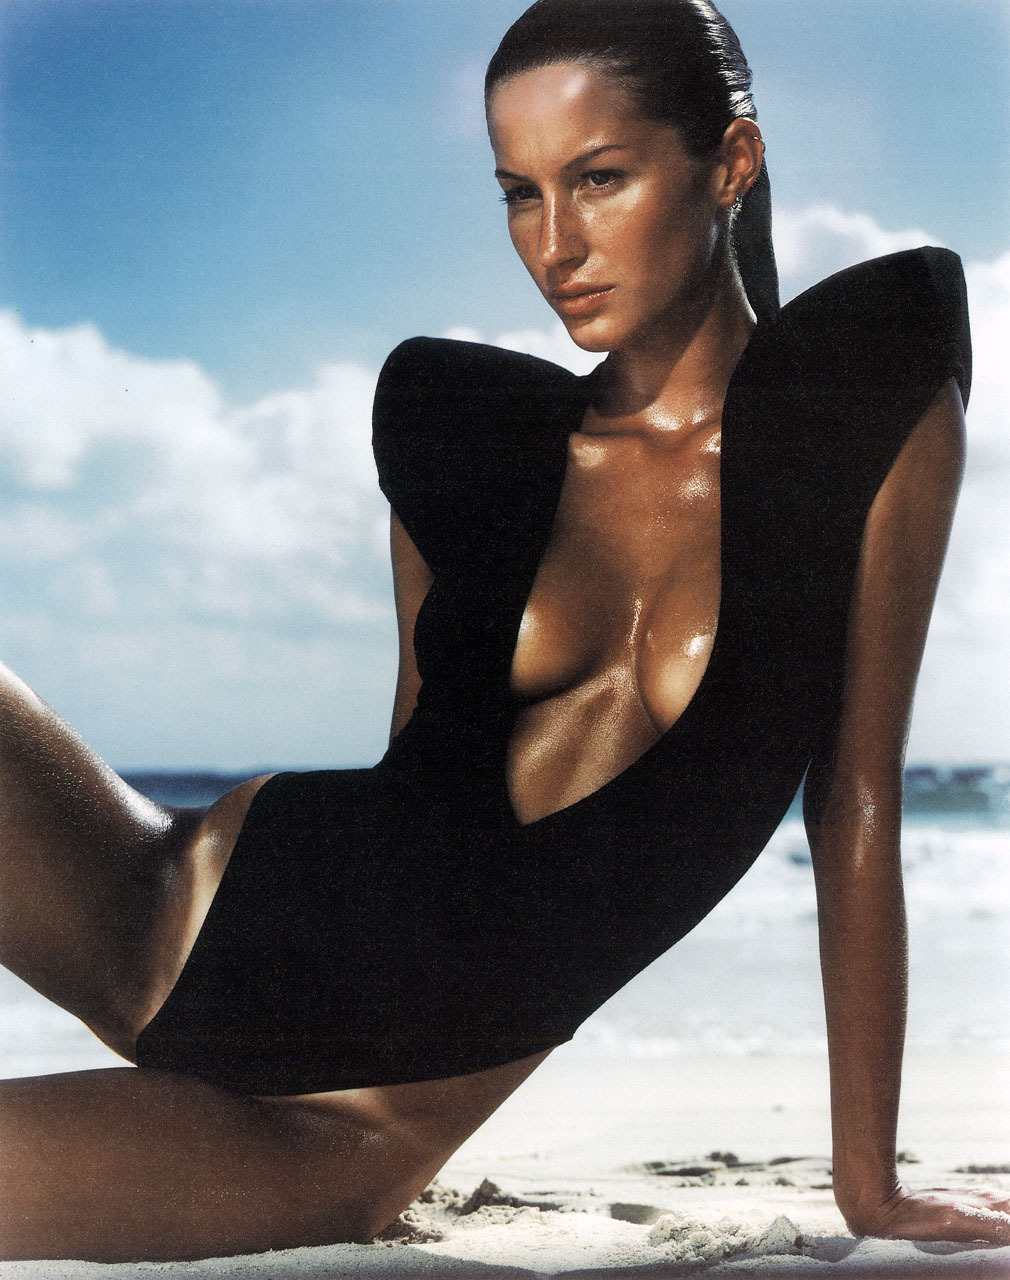 Gisele wears black shoulder-padded swimming costume by Jeremy Scott. Lick the Battery, The Facephotography sean ellis styling catherine aymé hairstylist neil moodie  Fashion Images de Mode Nº5 (2000)